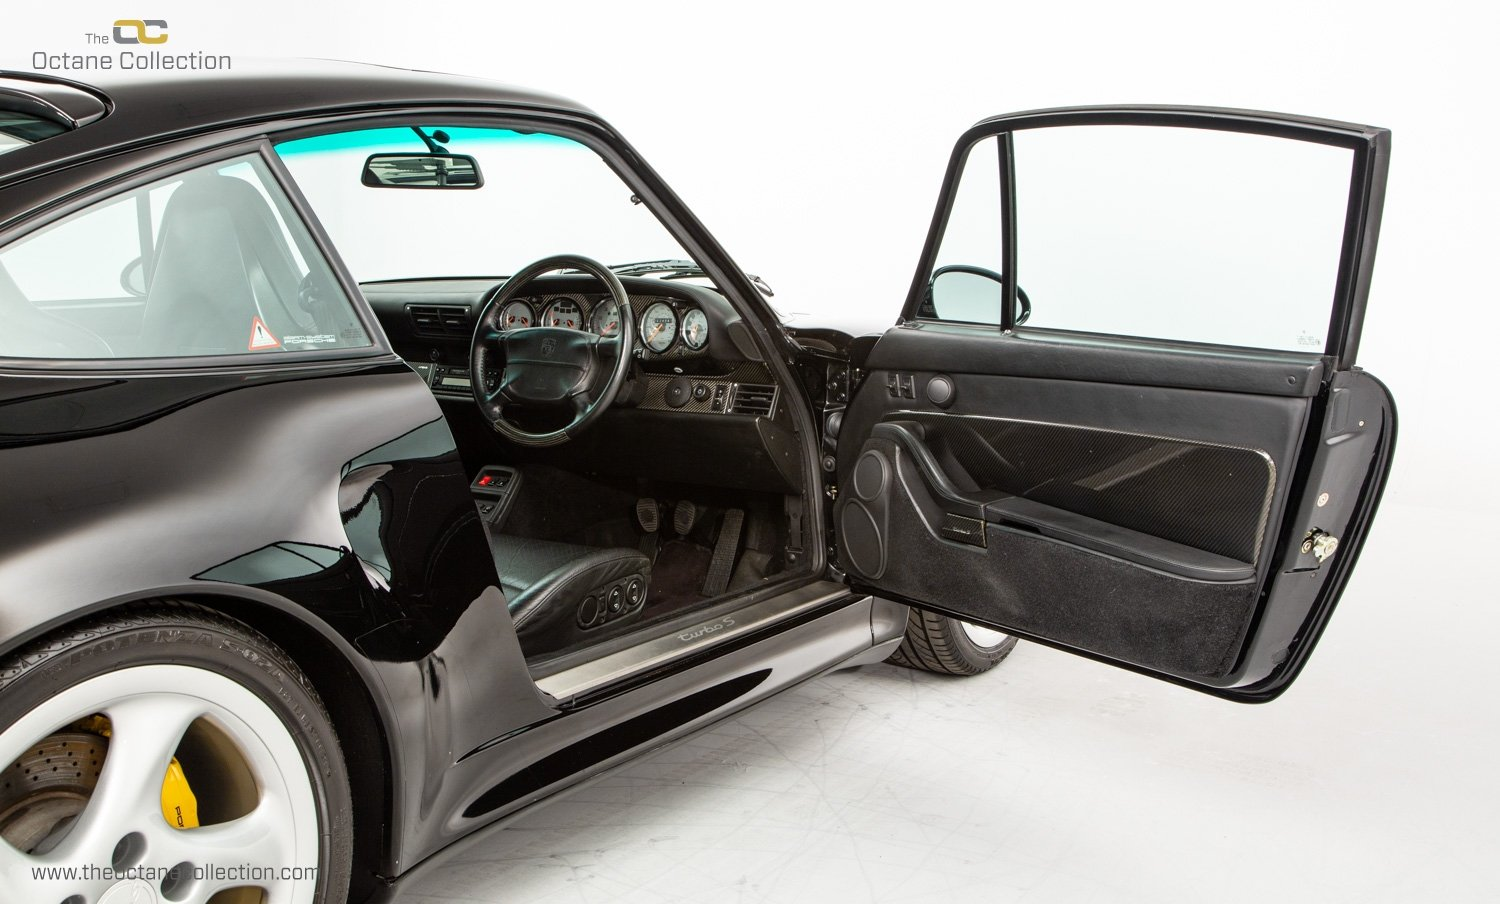 1998 PORSCHE 993 TURBO S // 1 OF 23 RHD CARS // UK C16 // FPSH For Sale (picture 14 of 24)